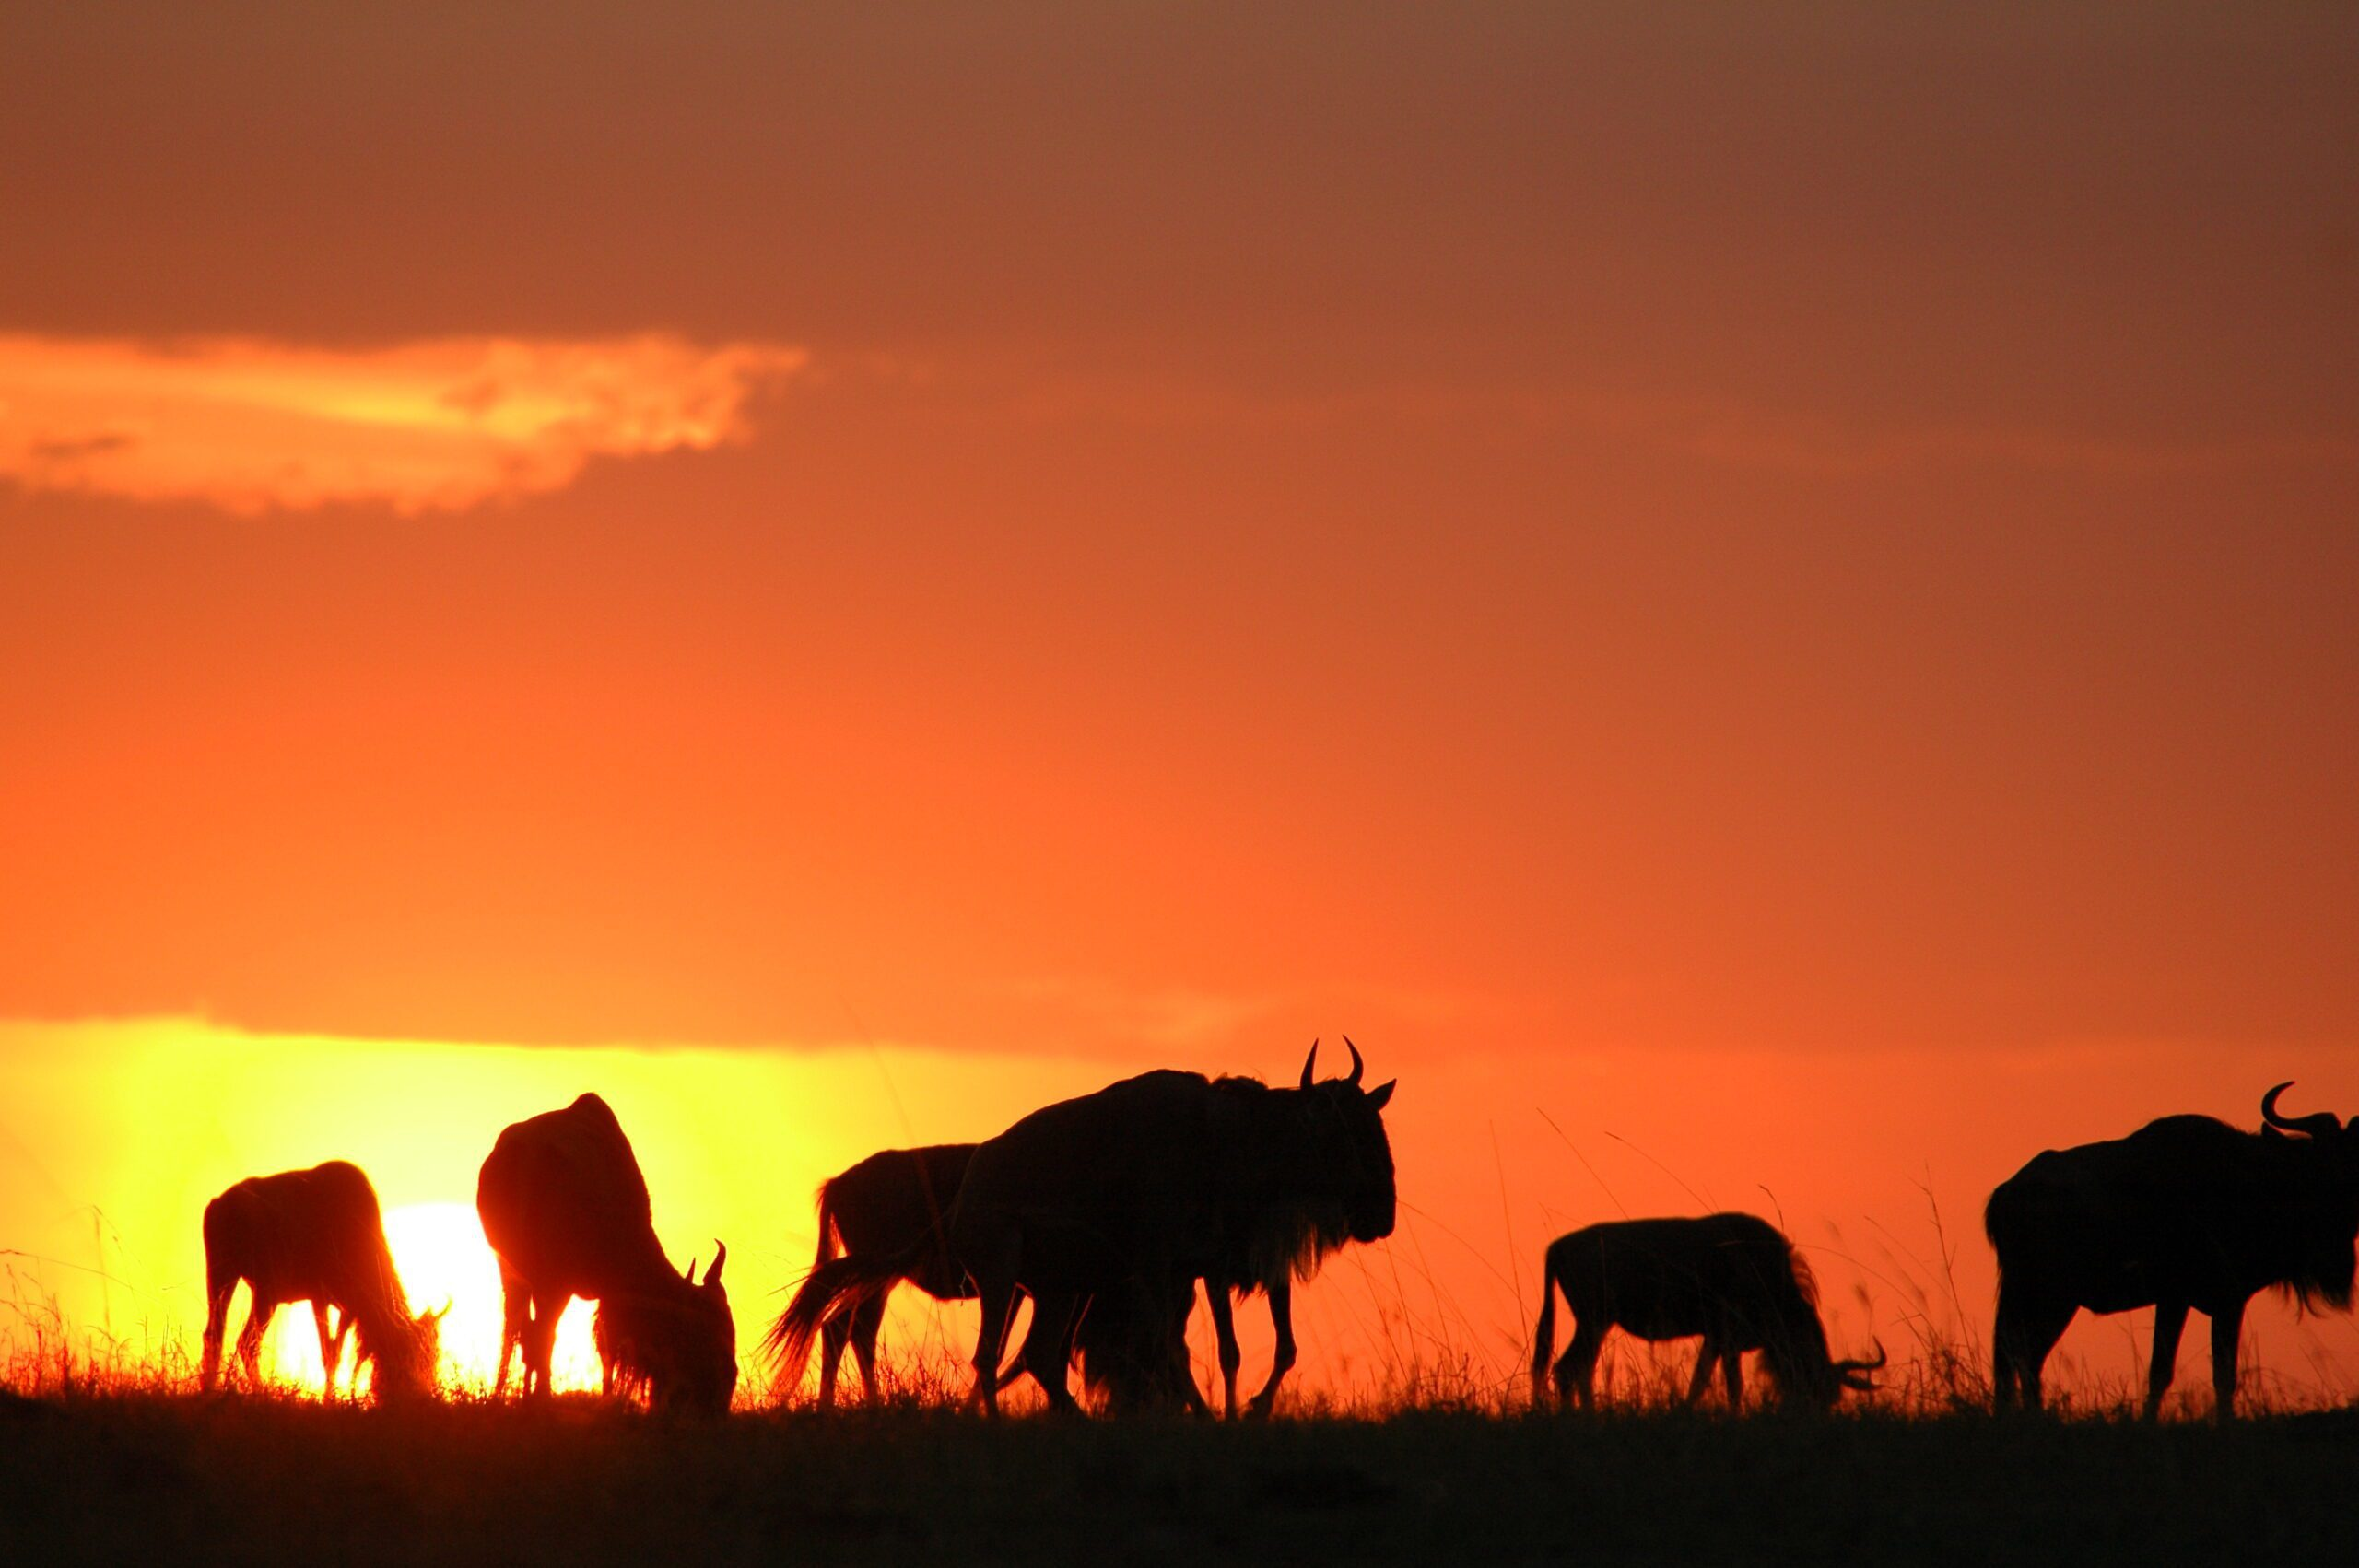 On our northern Tanzania safari see a herd of wildebeest with an orange sunset in the backdrop